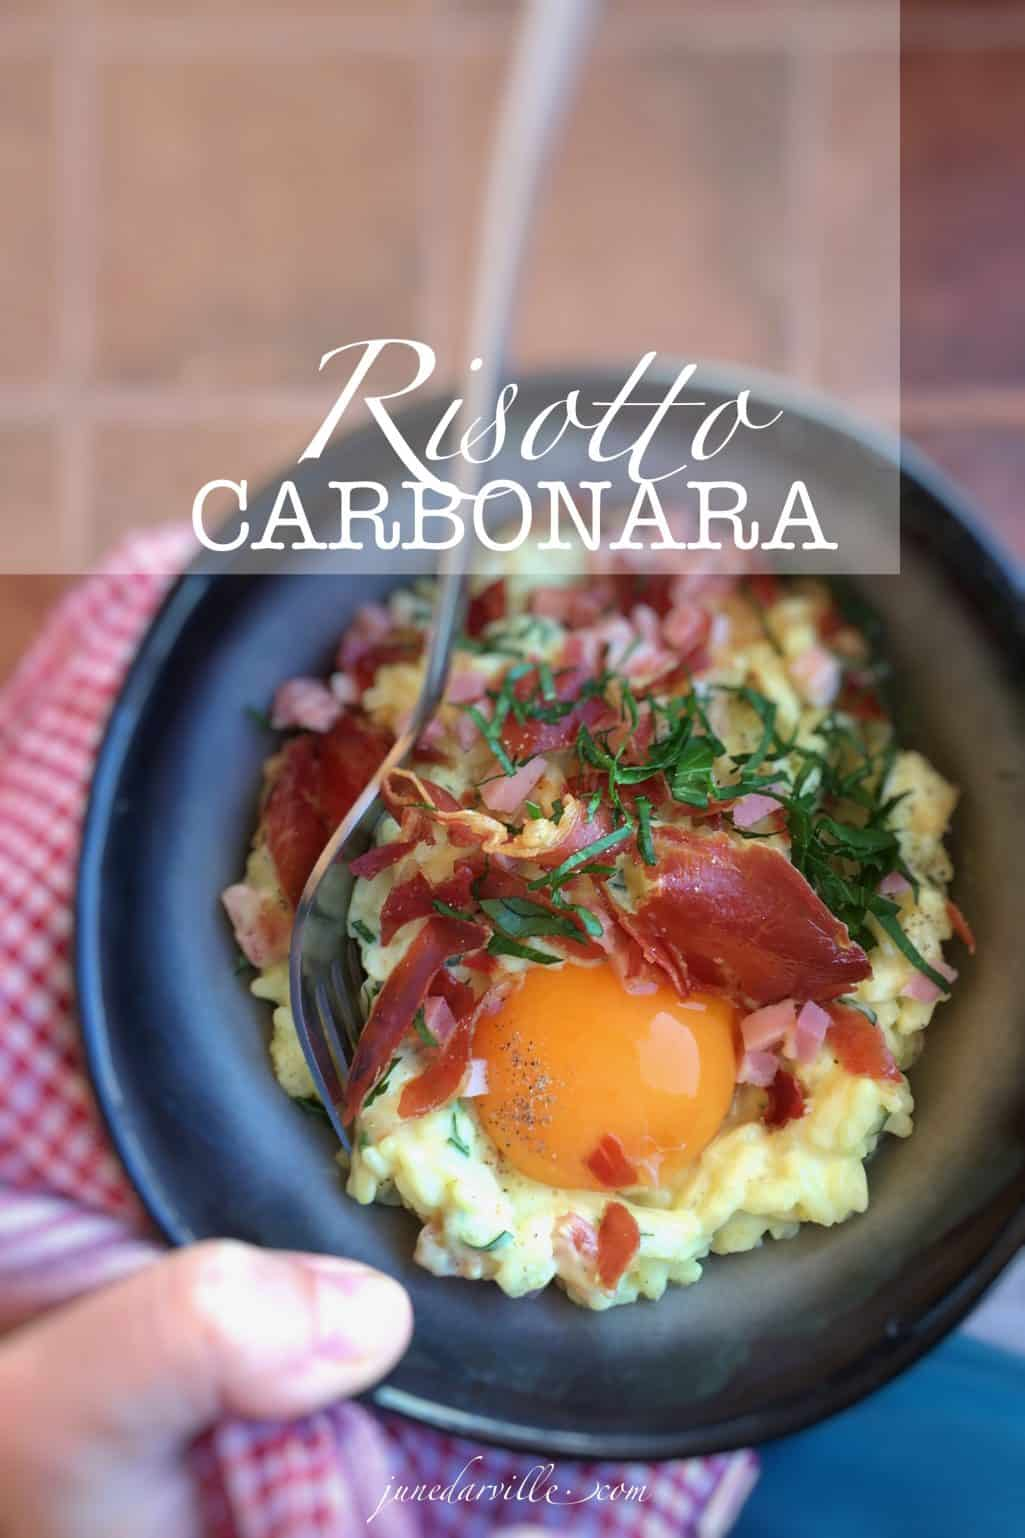 Here's a deliciously creamy risotto carbonara with bacon: or how to make two Italian classic recipes rolled into one dish!